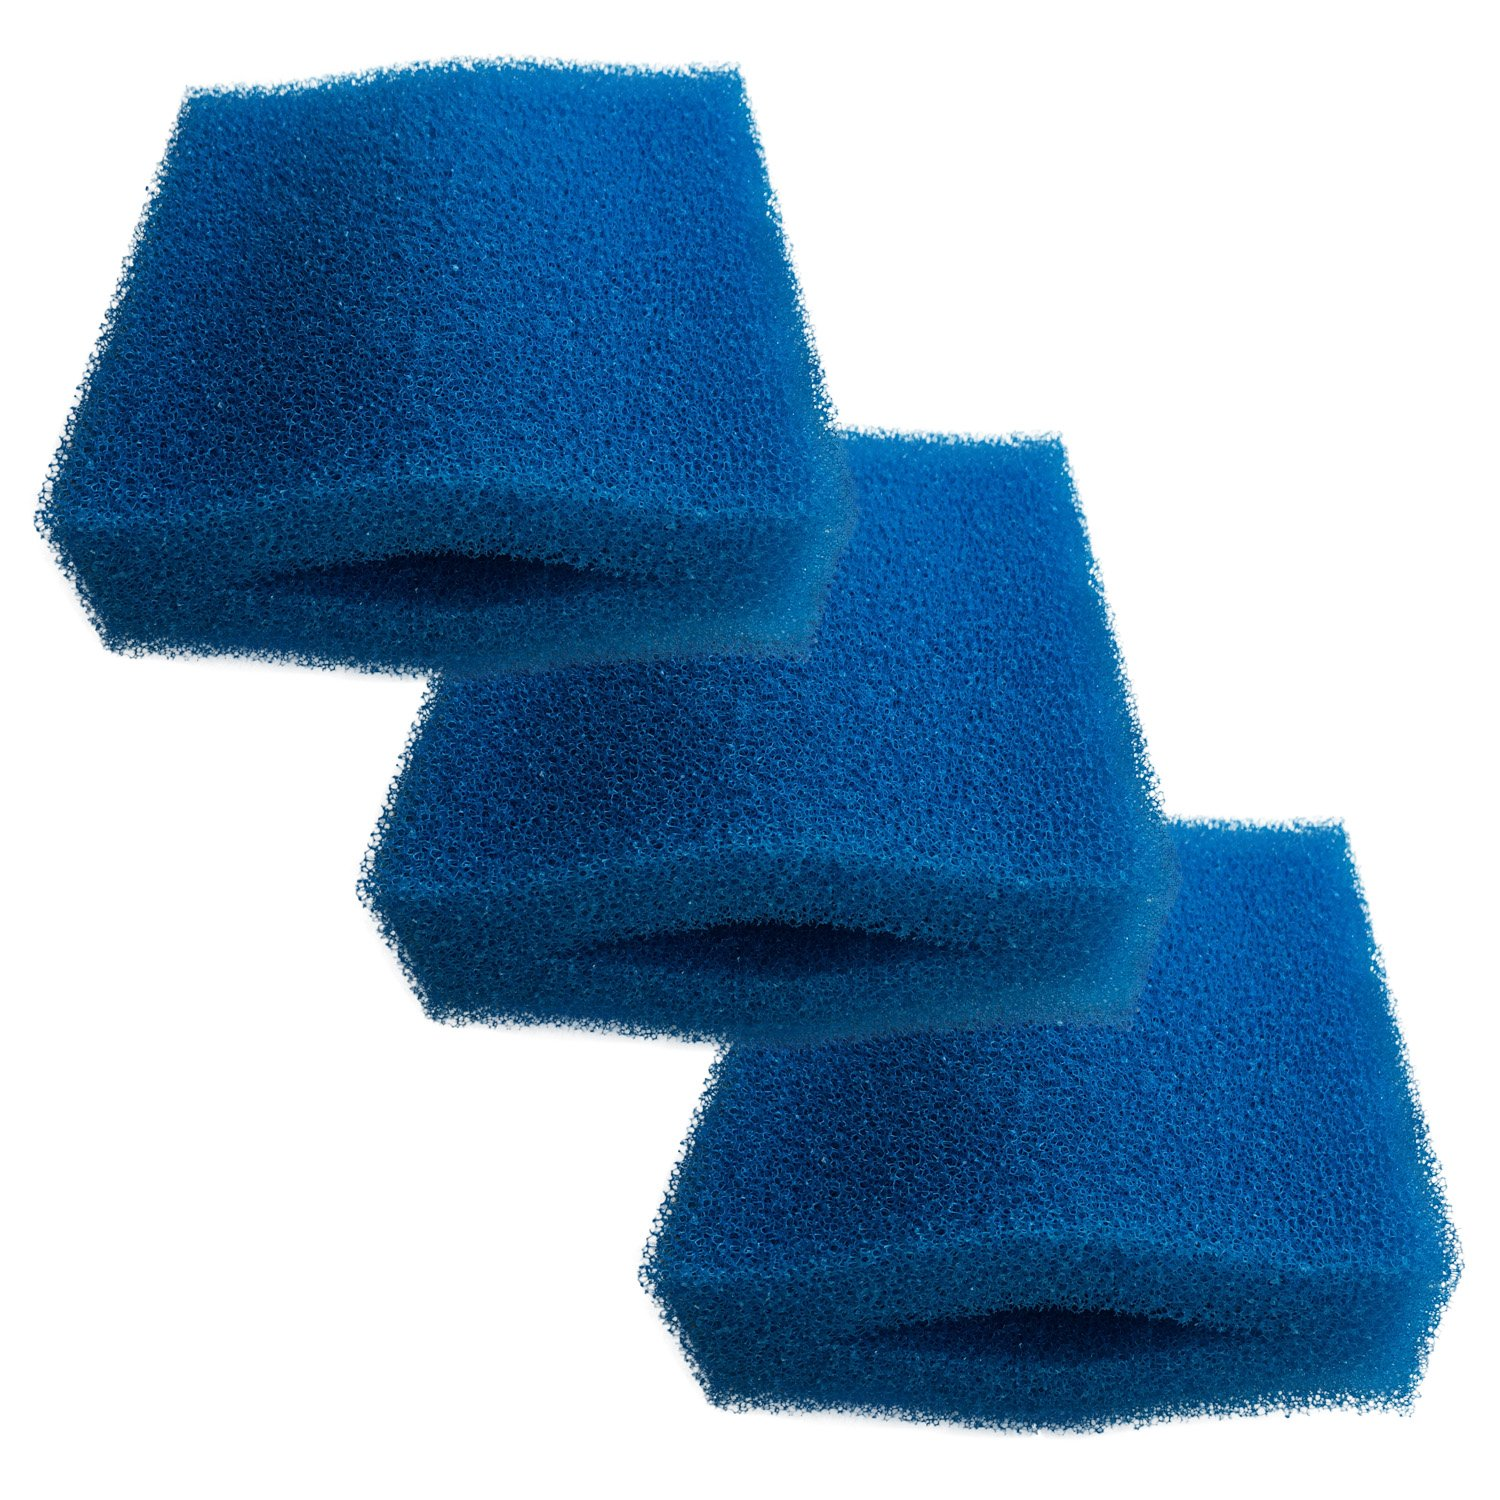 Finest-Filters 3 x Oase Biotec 5 10 30 Replacement bluee Coarse Pond Filter Foams